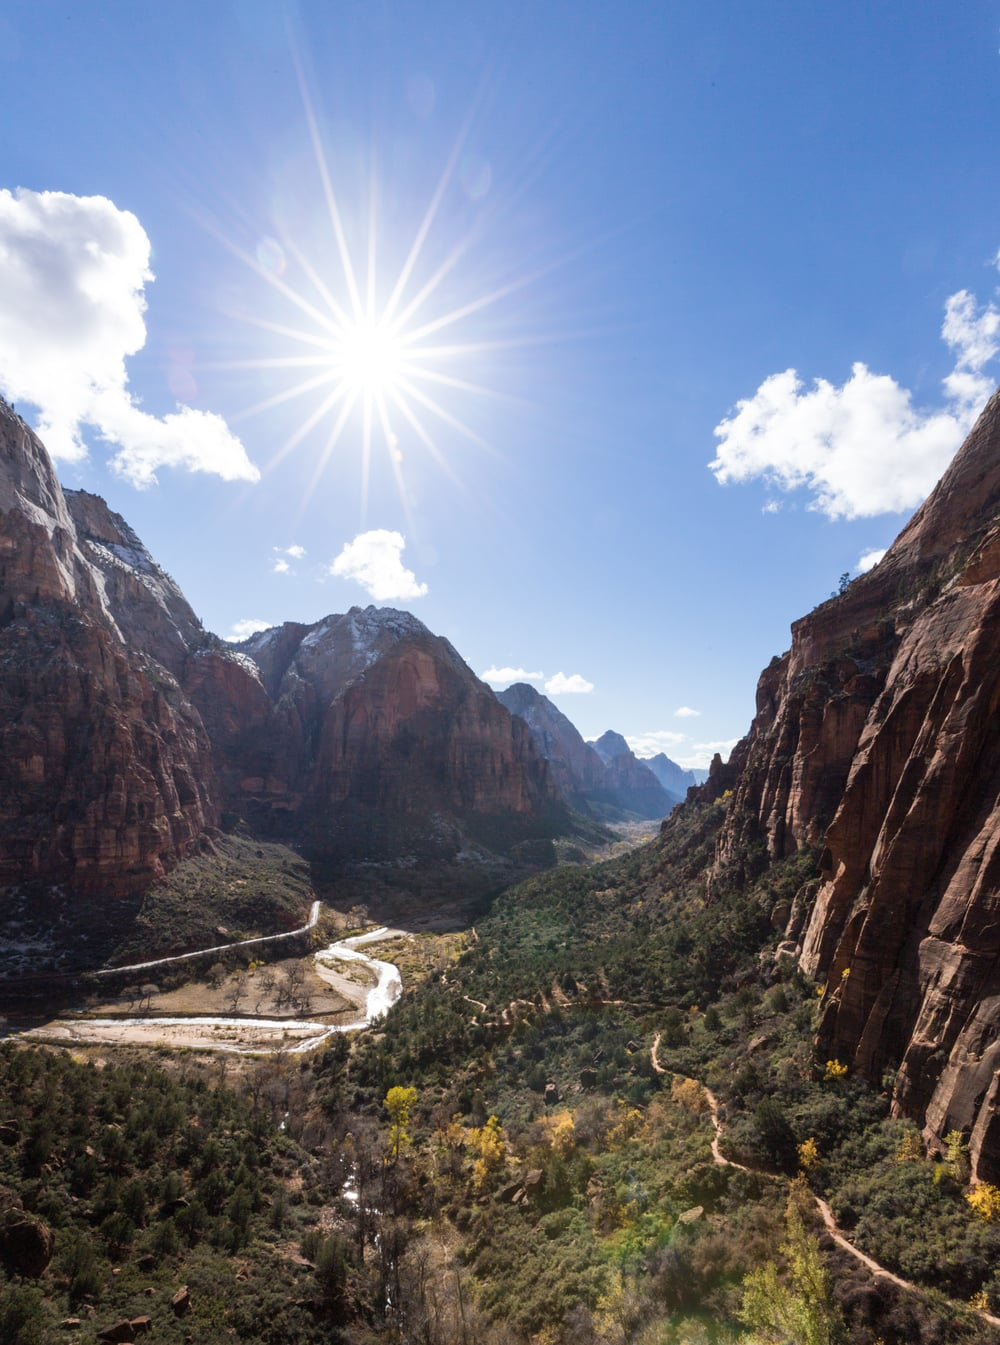 A view from the early portion of the Angels Landing hike